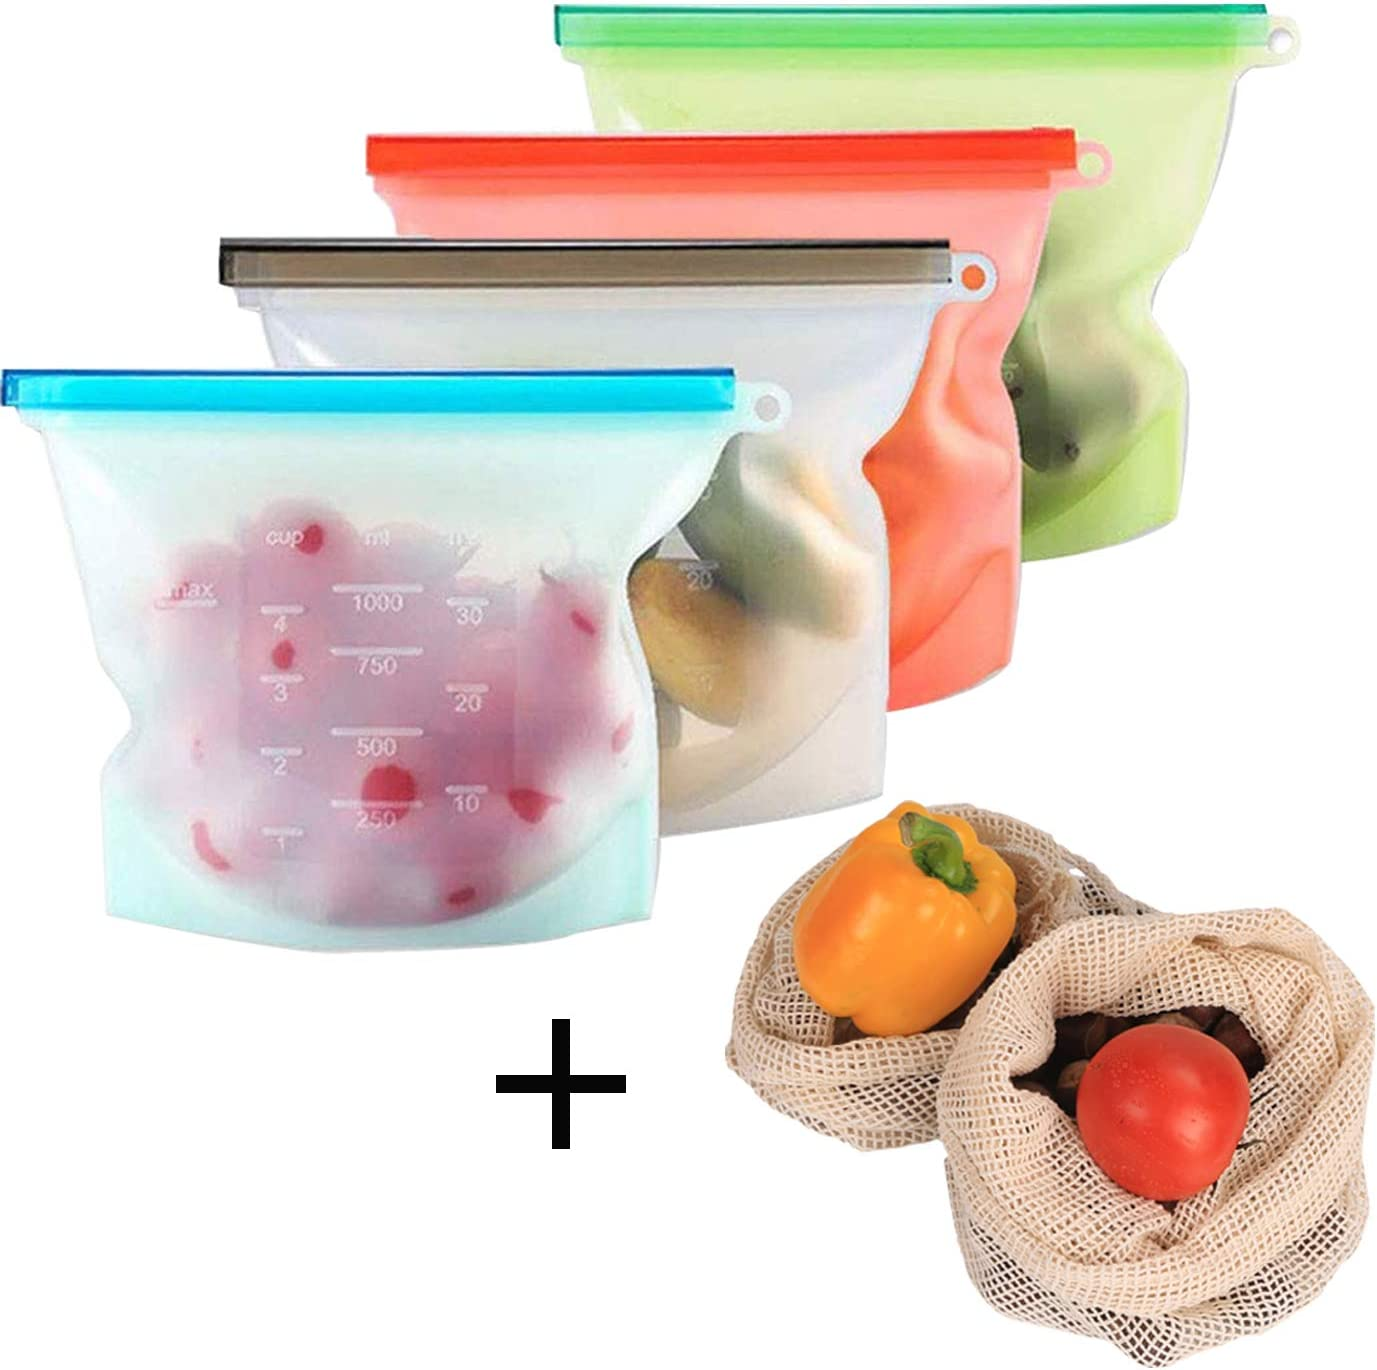 Reusable Silicone Food Storage Bags,4 Medium Silicone Bags & Freezer Bags,Airtight Seal Food Preservation Bag for Vegetable,Liquid, Snack, Meat, Sandwich, Fruit with 2 Produce Bags